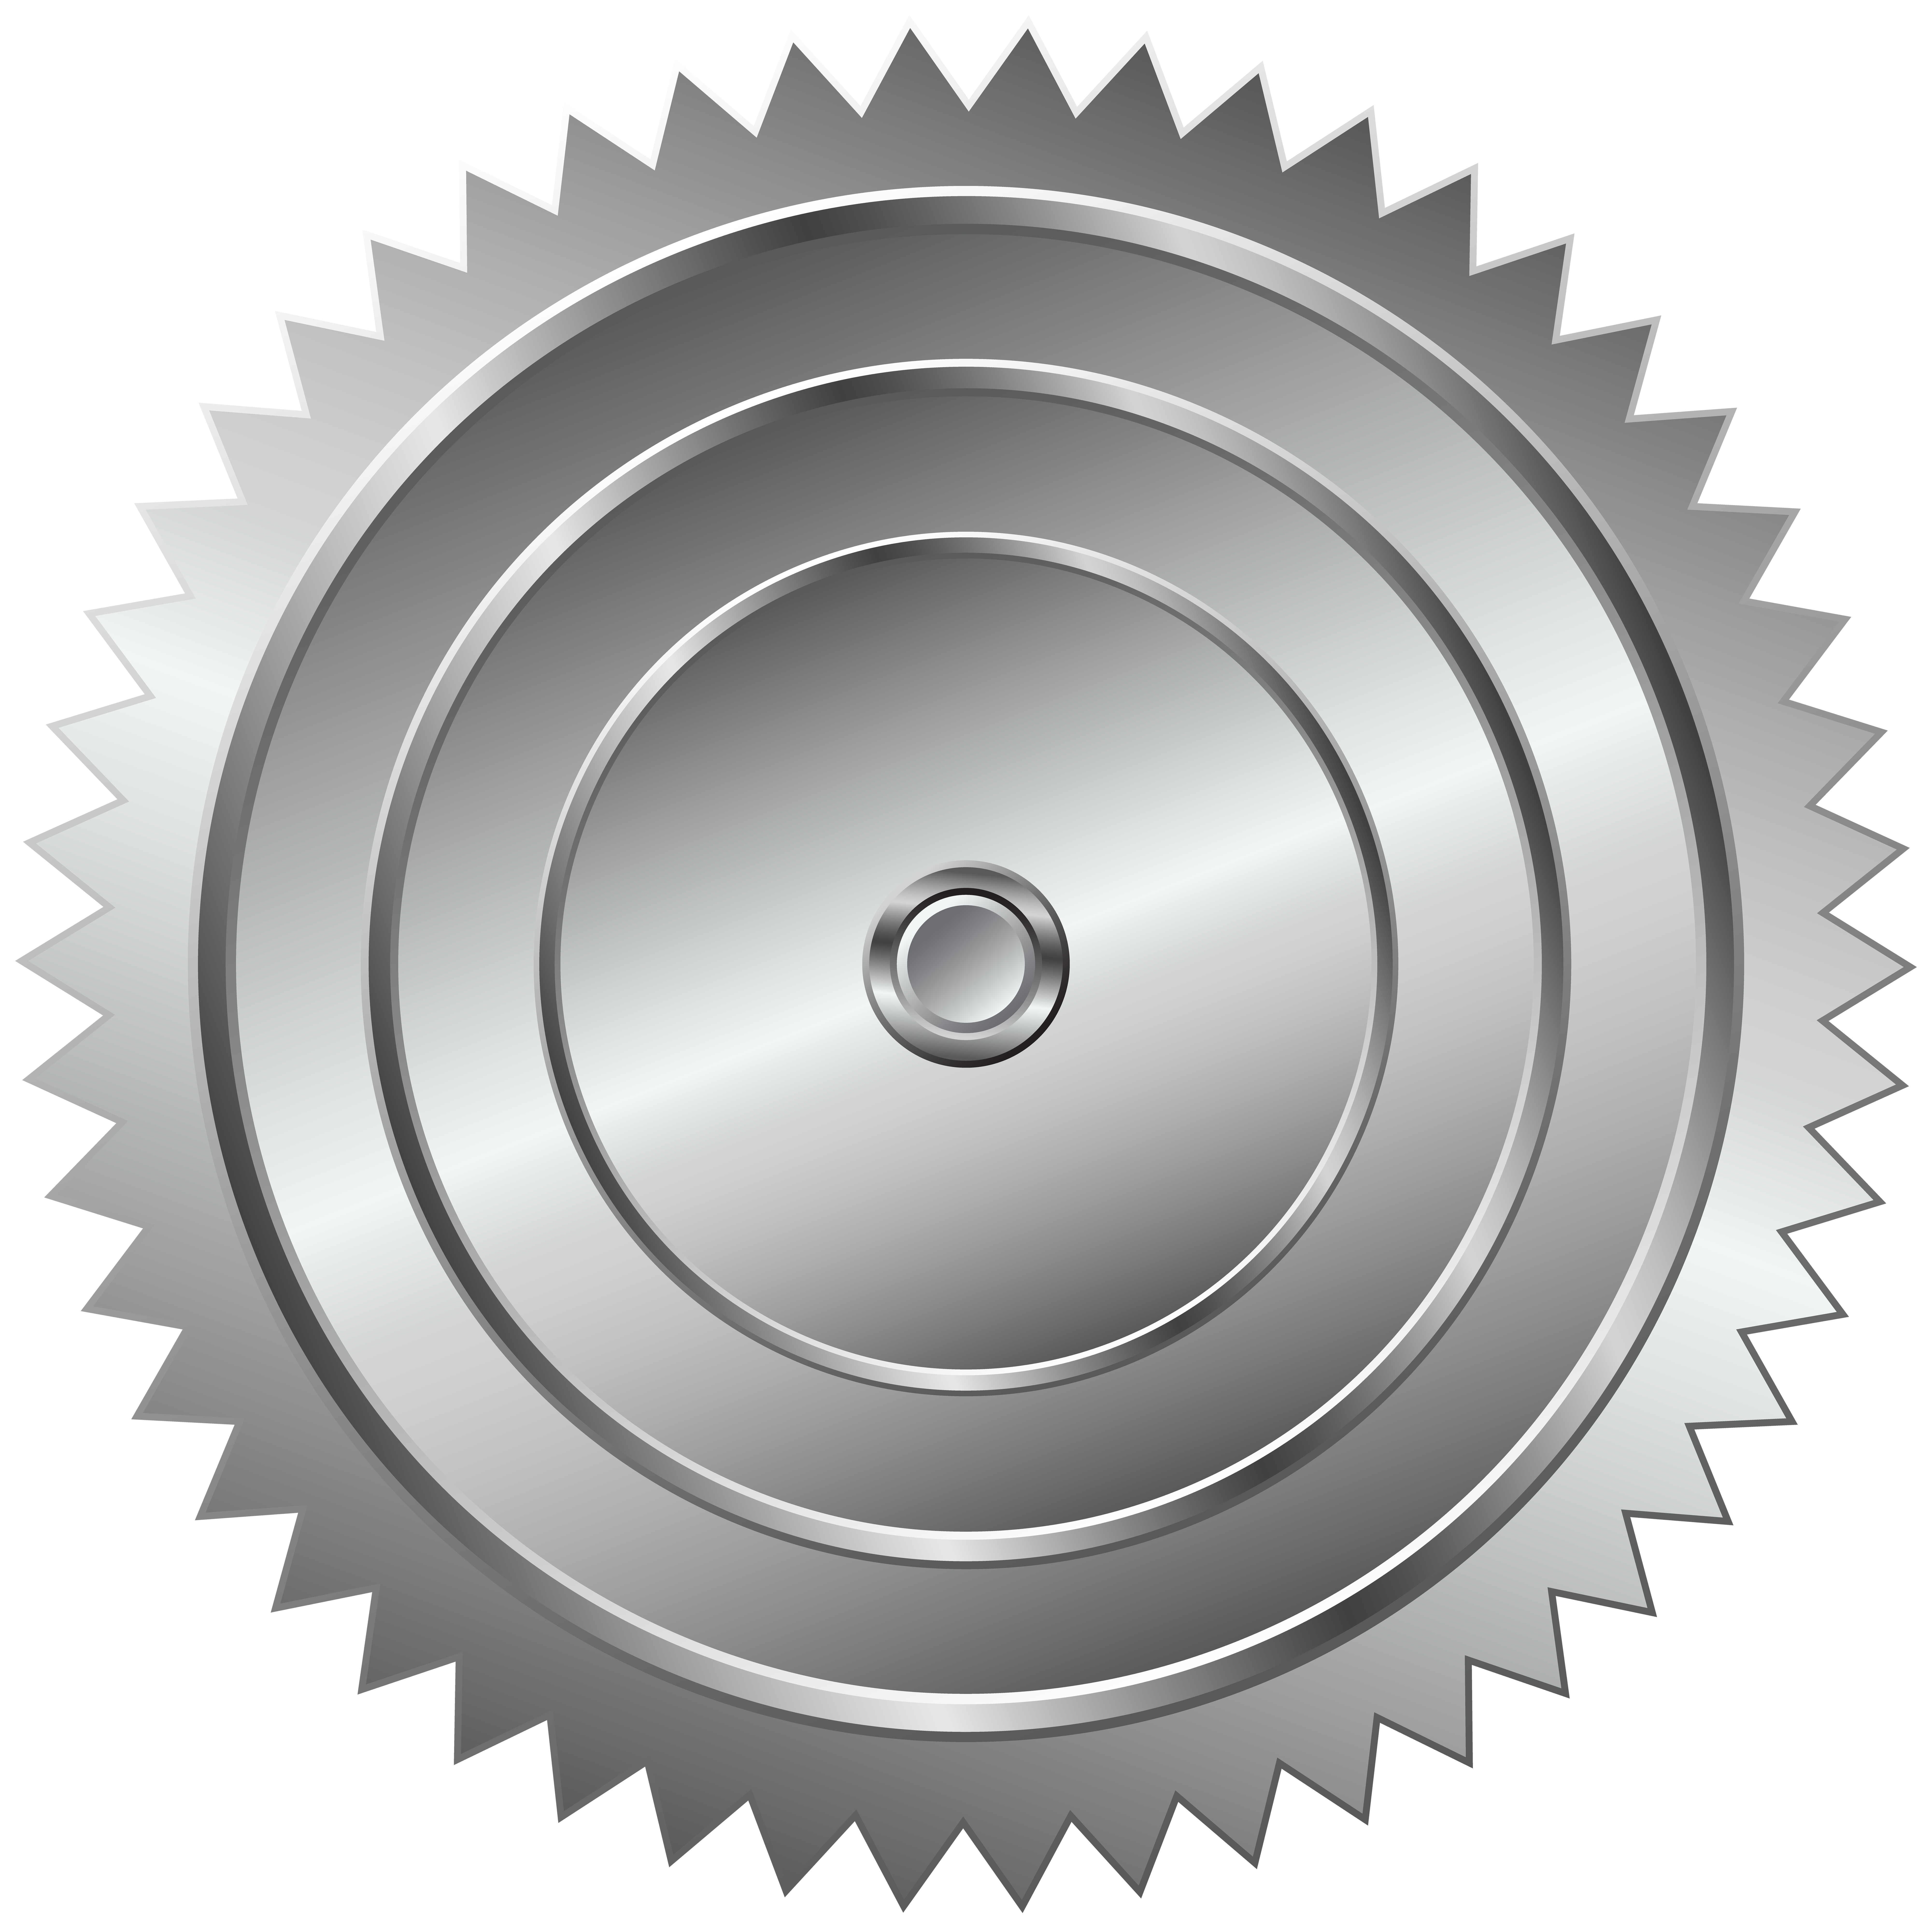 Gear heart clipart picture royalty free Gear Silver Clip Art PNG | Gallery Yopriceville - High-Quality ... picture royalty free